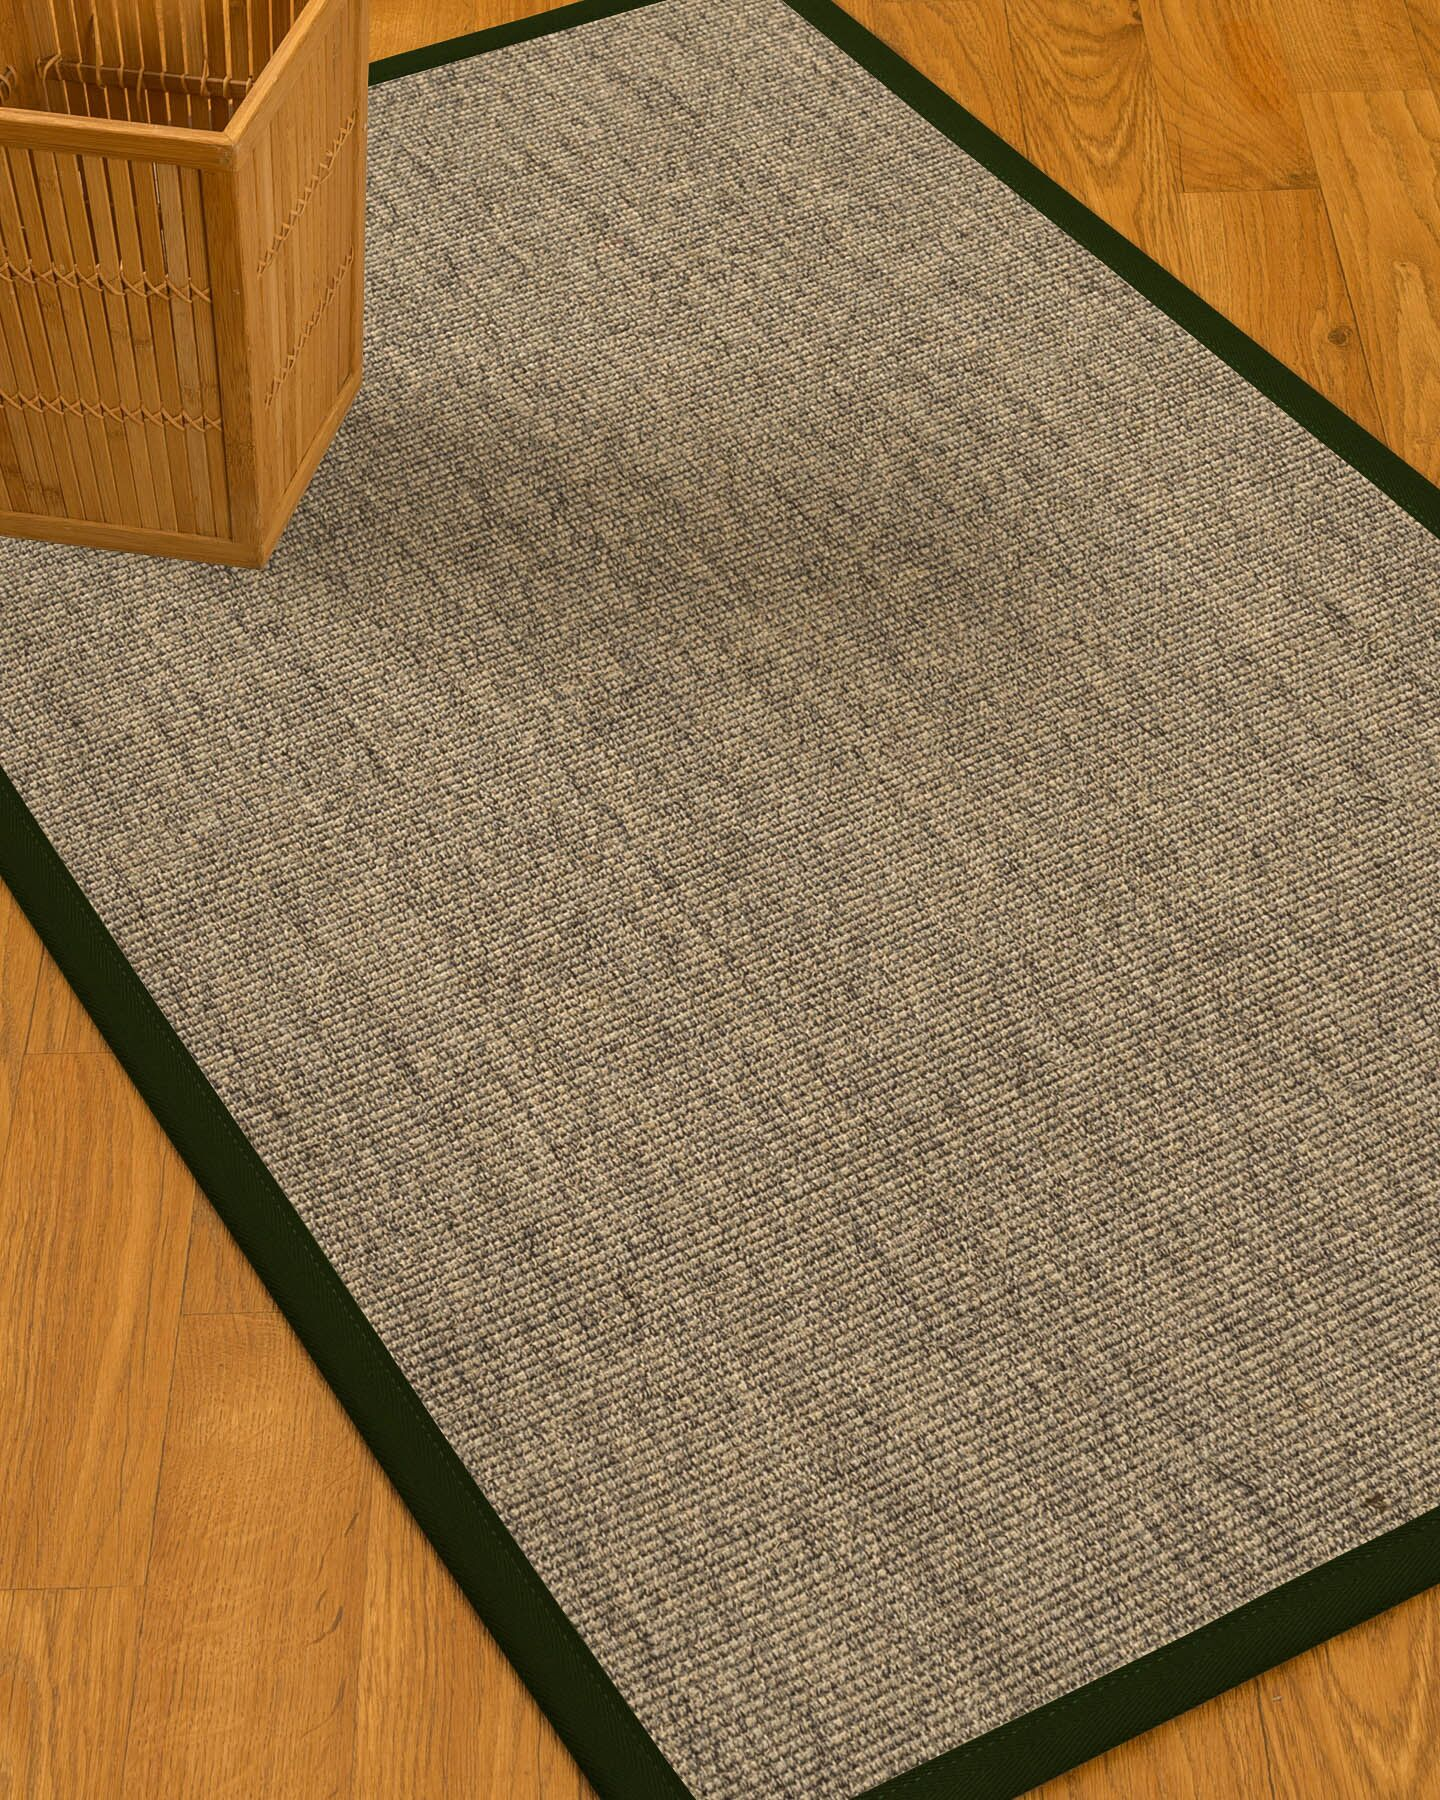 Mahan Border Hand-Woven Gray/Moss Area Rug Rug Pad Included: No, Rug Size: Runner 2'6